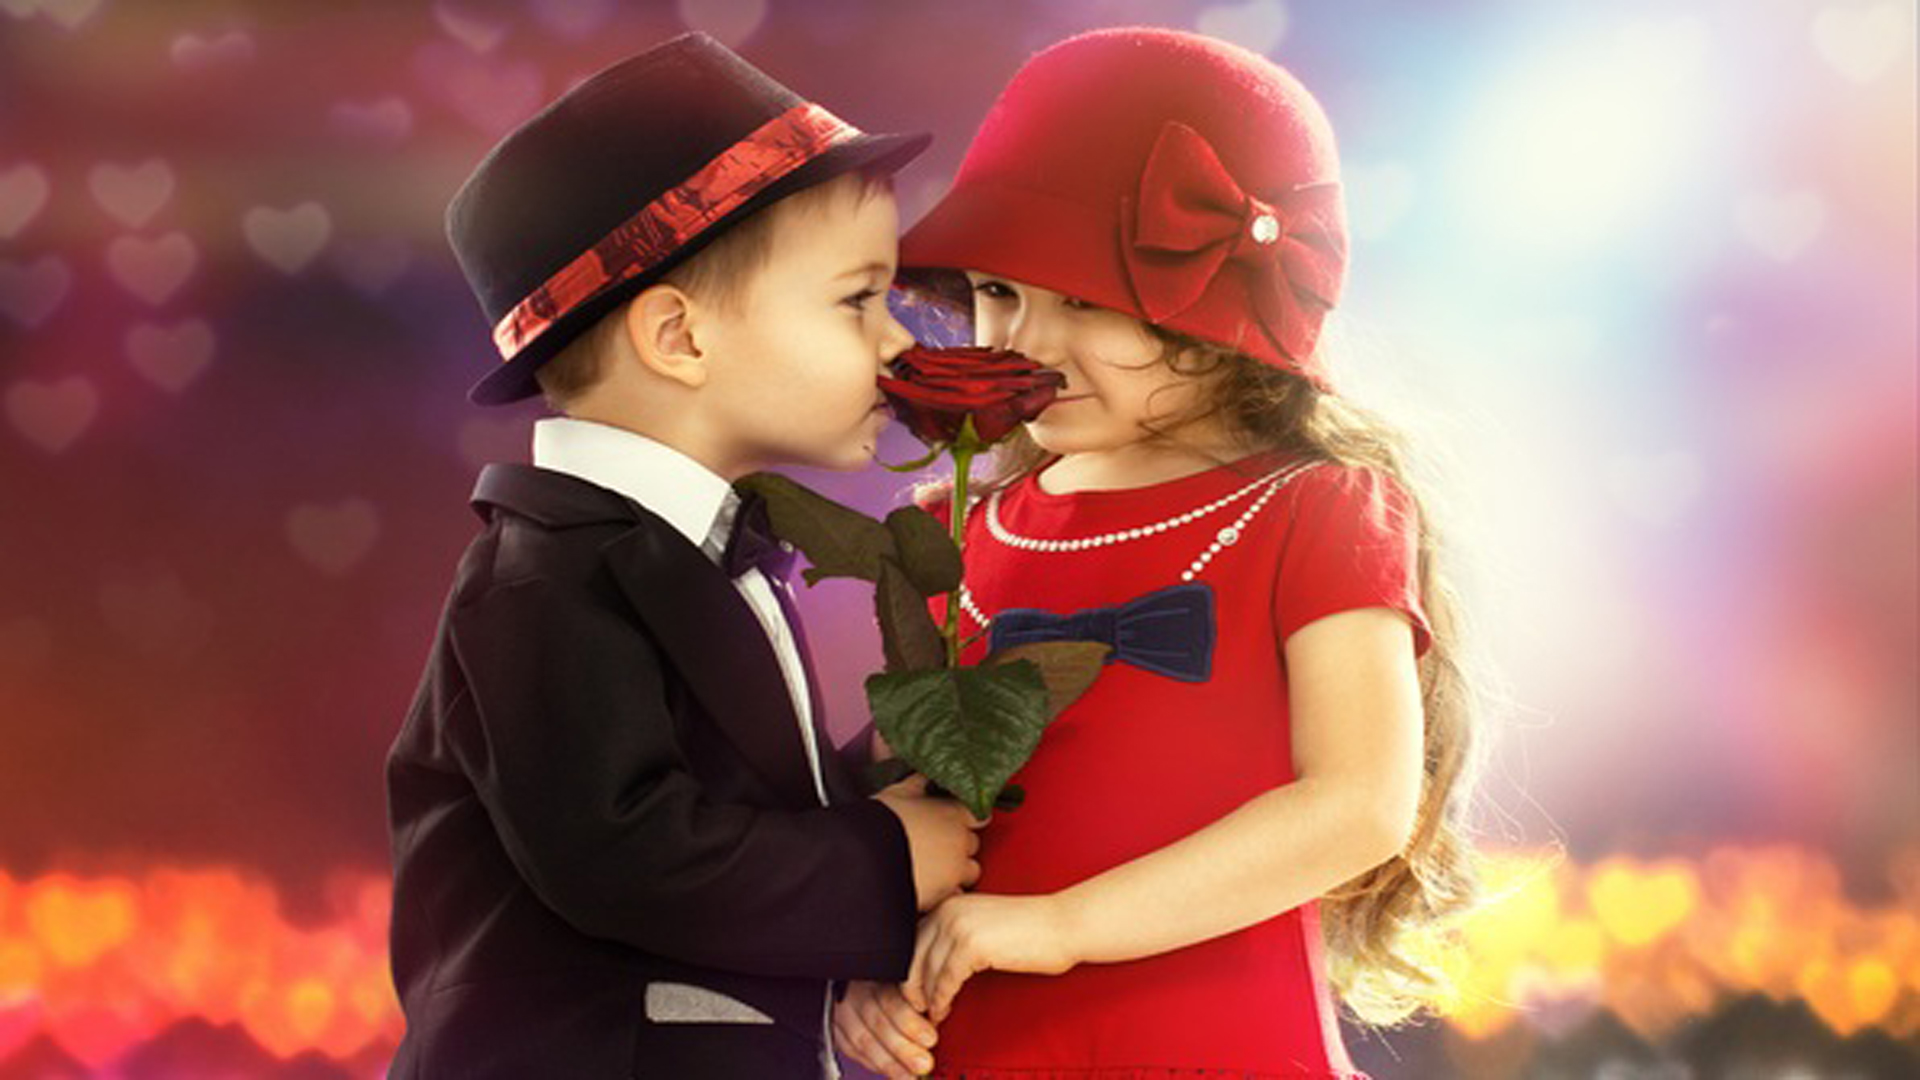 Download Lovely Couple Wallpaper Free Download Gallery